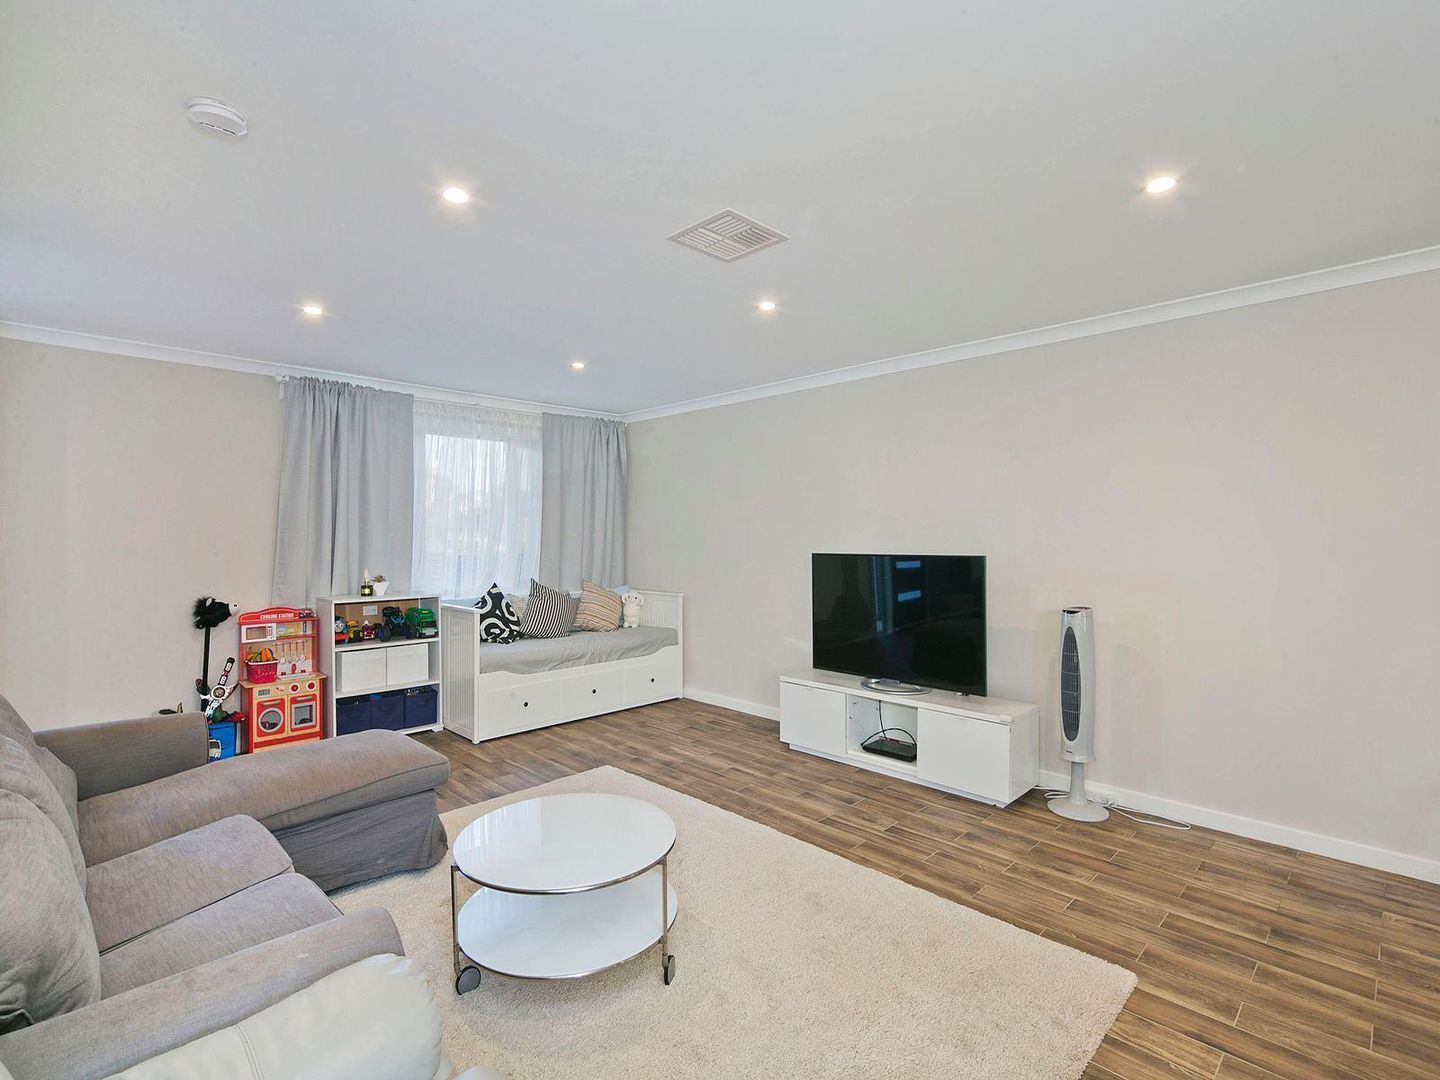 38/1 Gifford Street, Coombs ACT 2611, Image 1